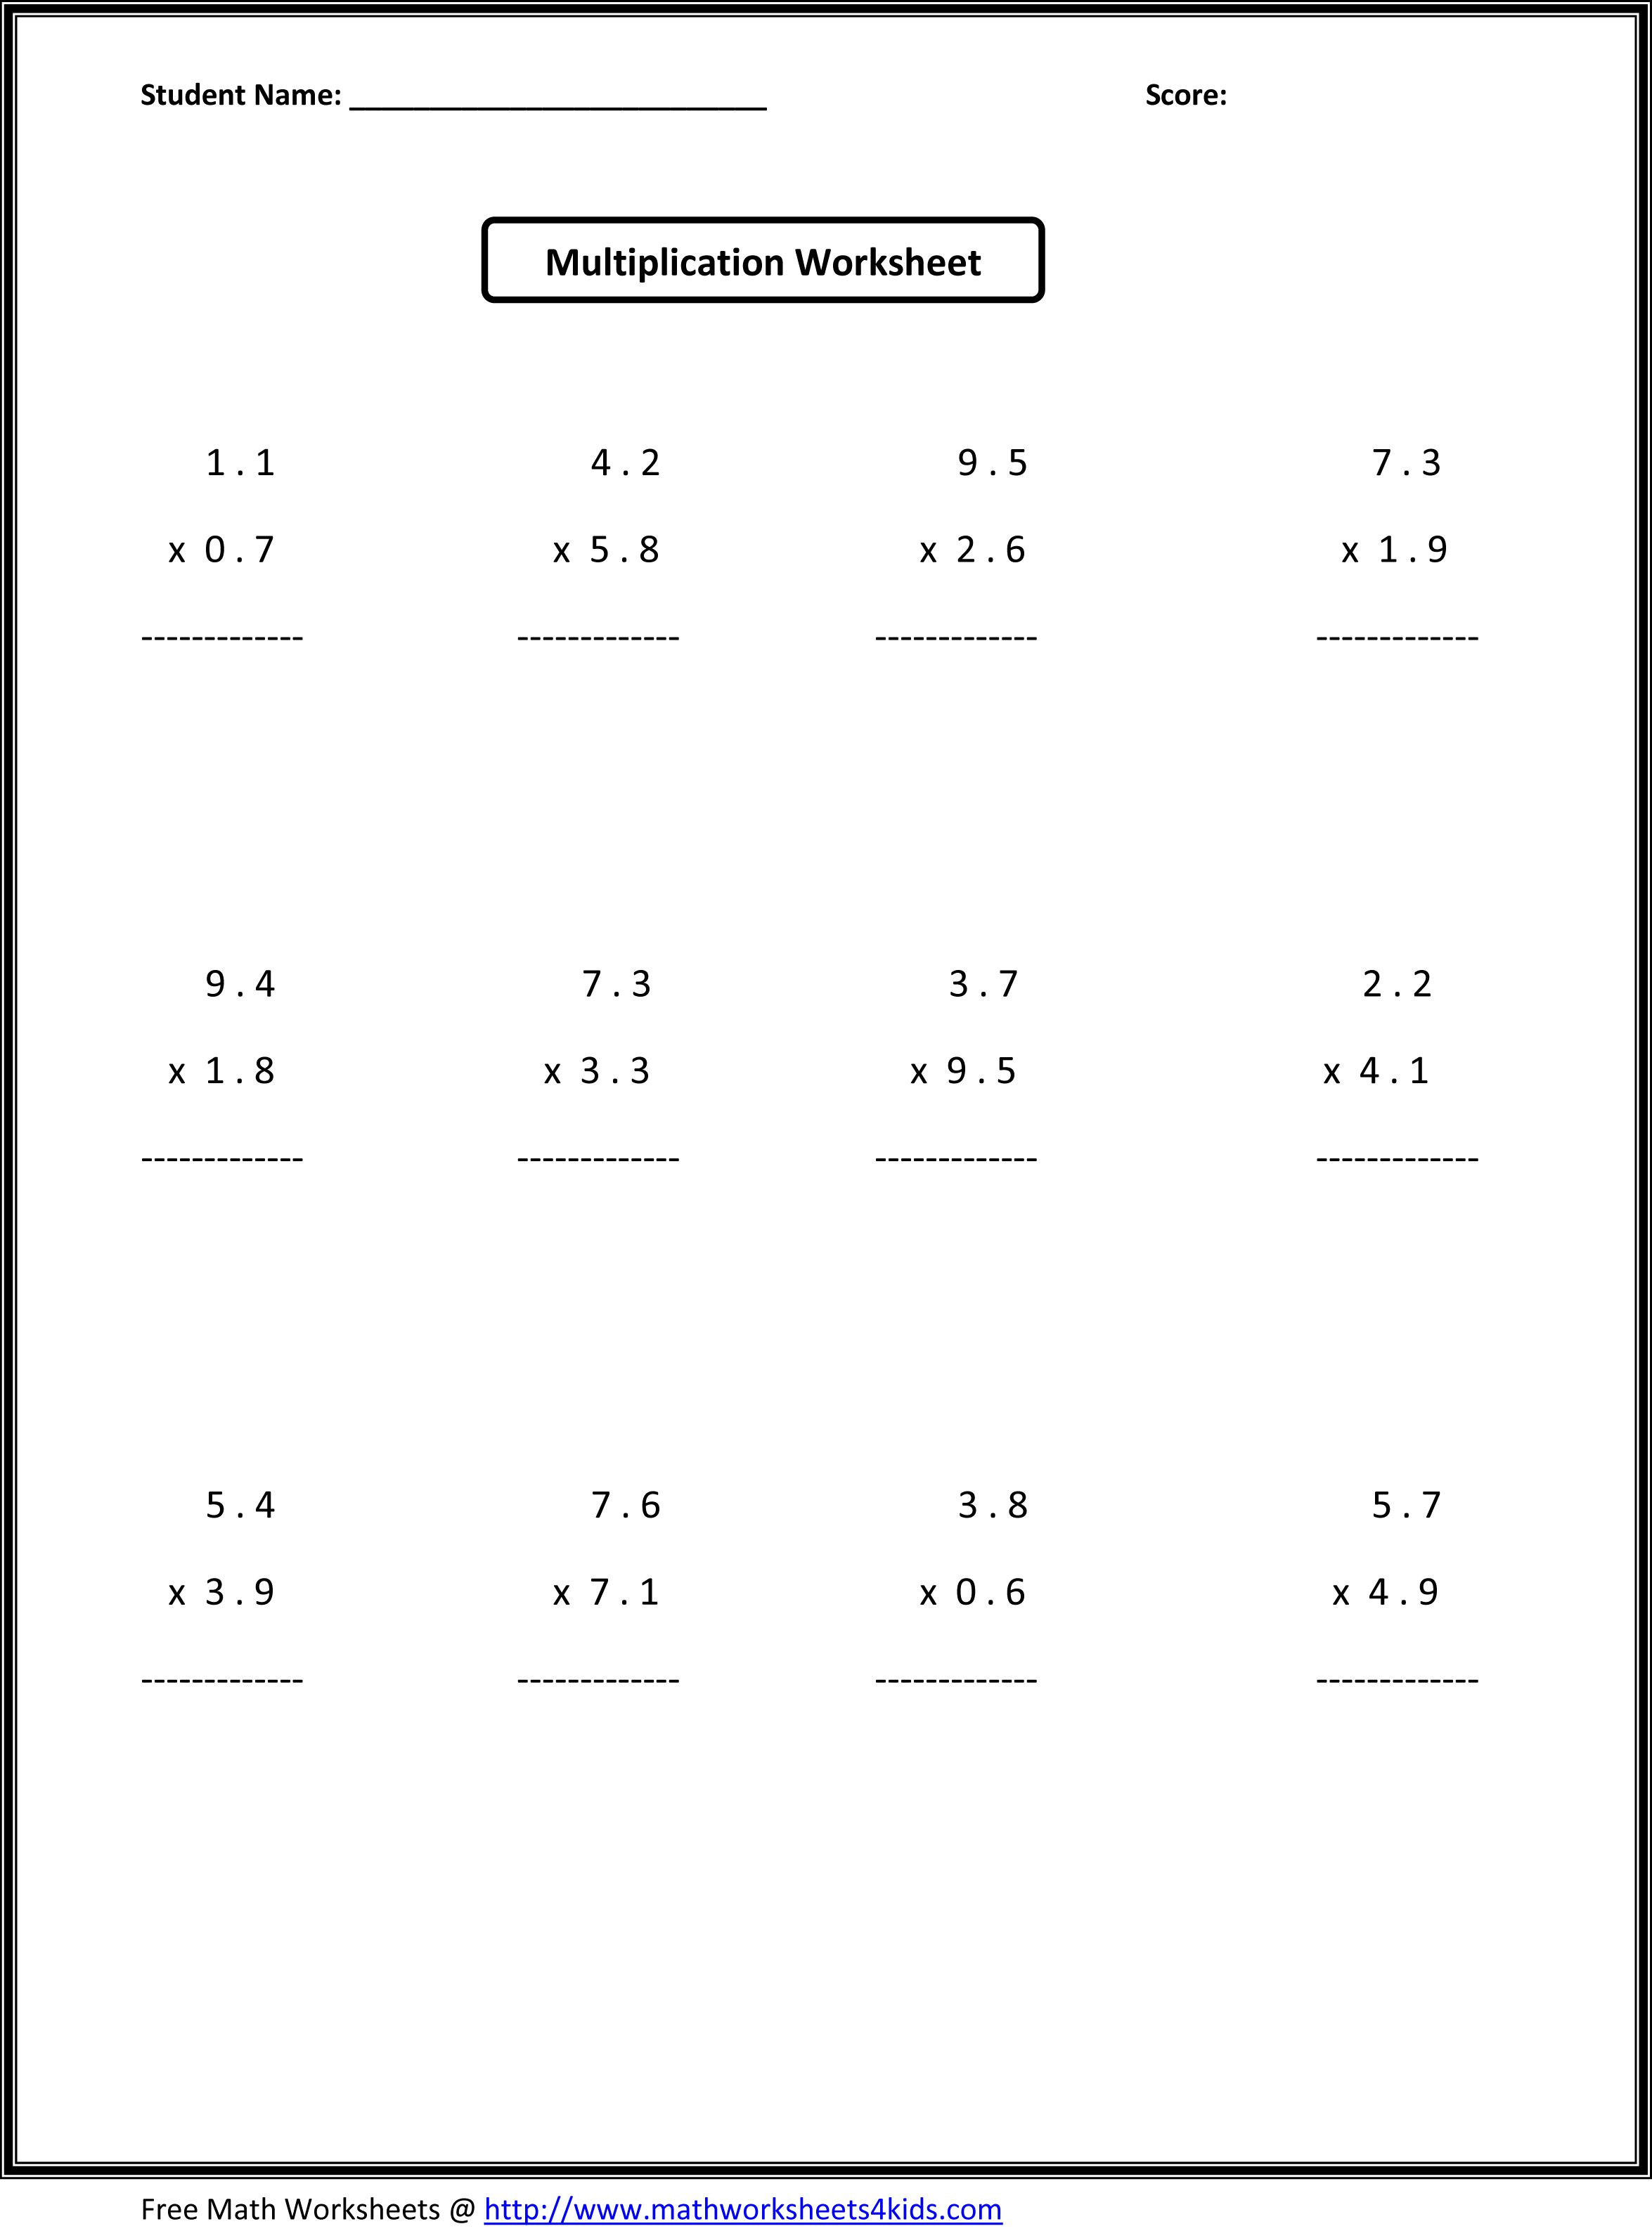 7Th Grade Math Worksheets | Value Worksheets Absolute Value - Free | Free Printable Worksheets 6Th Grade Math